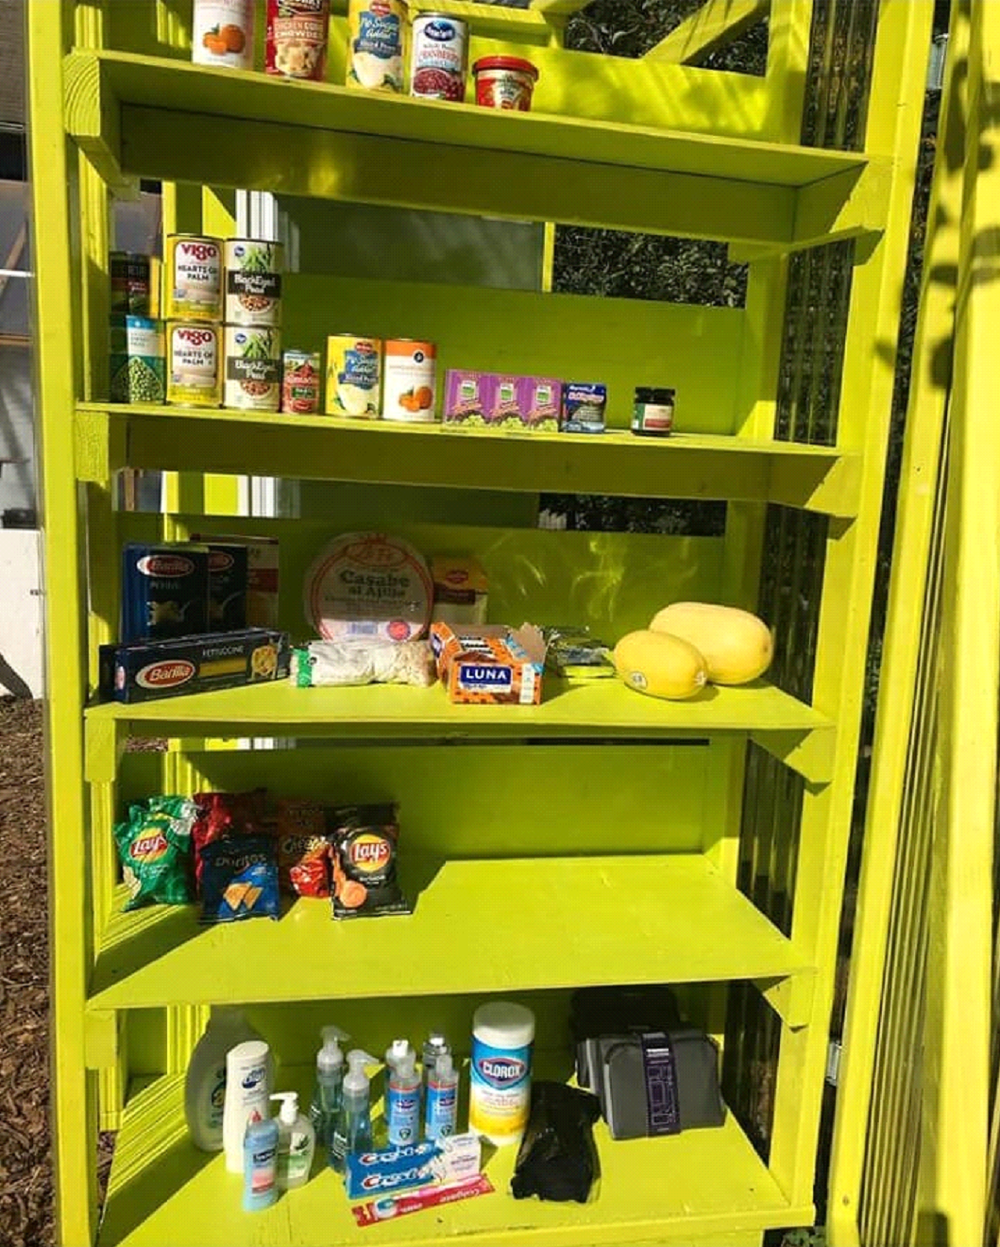 A Free99Fridge stands in an Atlanta area neighborhood, stocked with food for those in need.